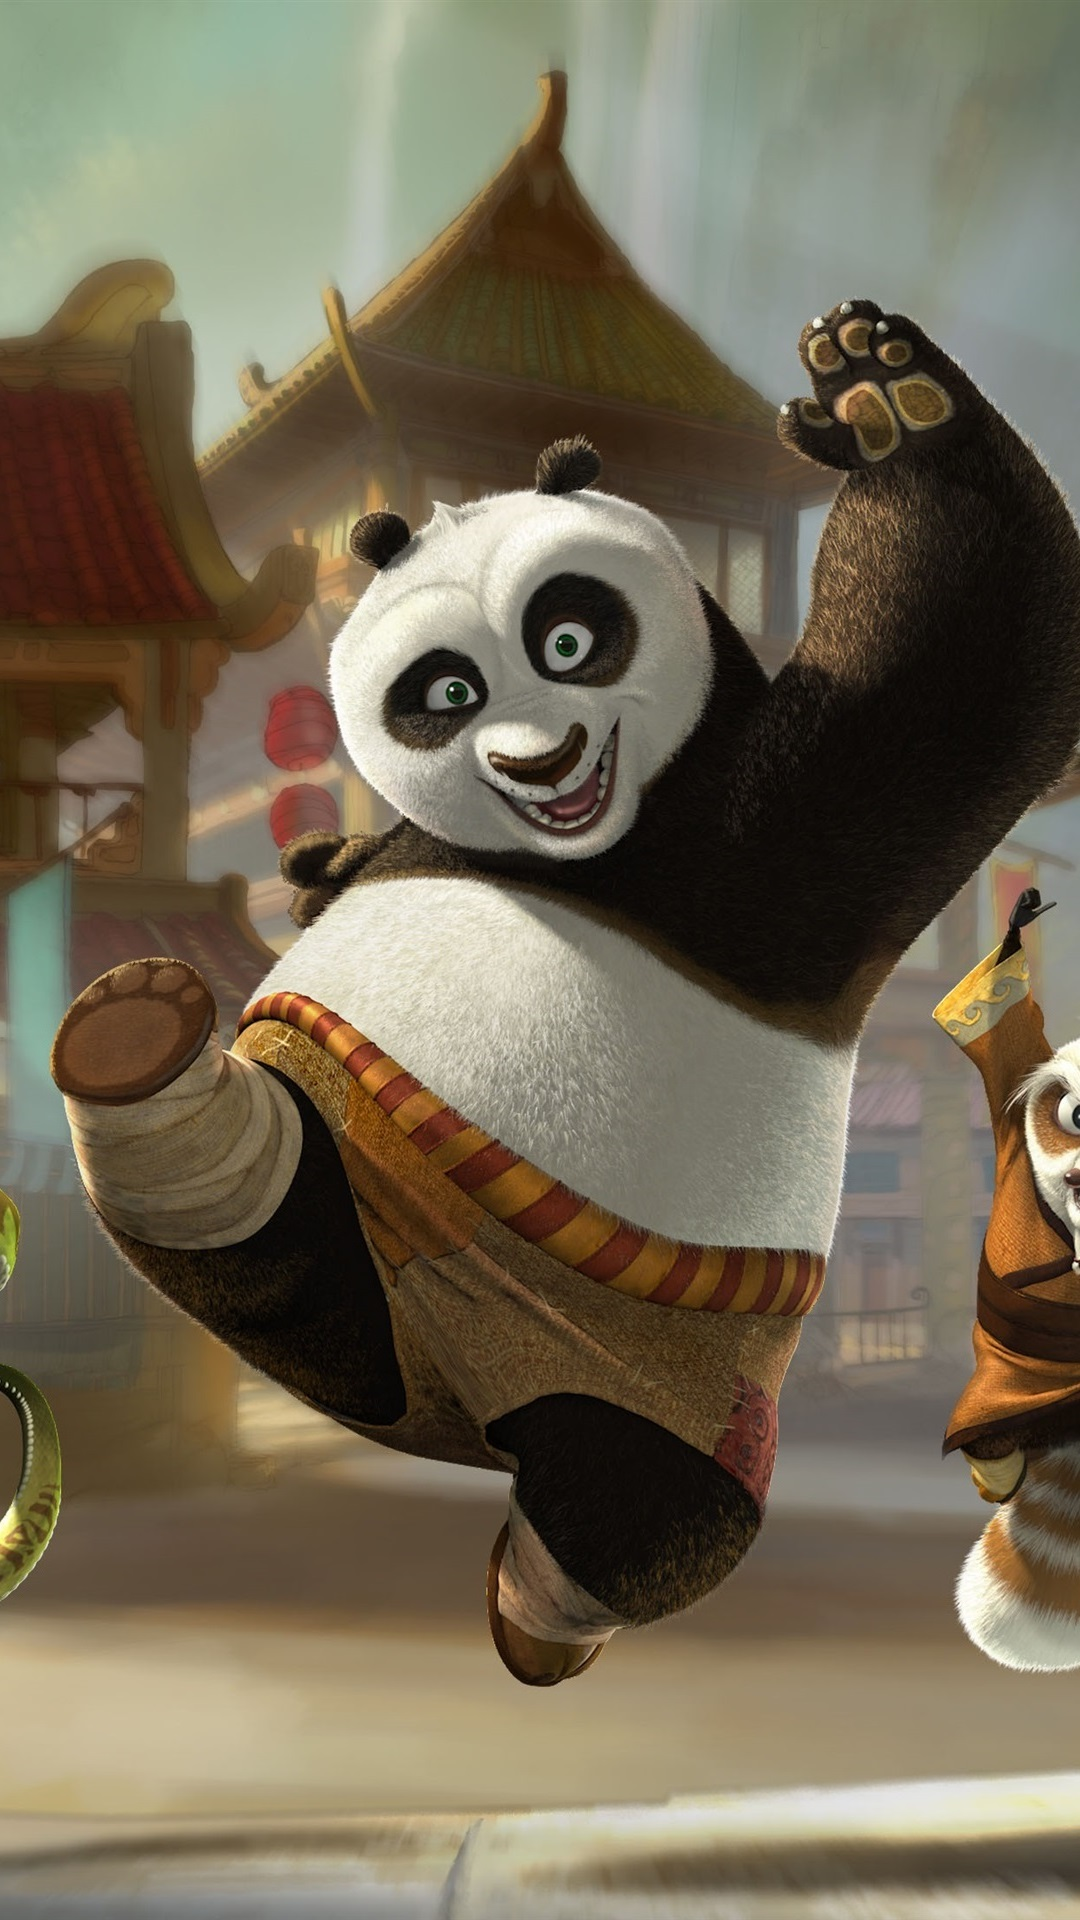 Kung Fu Panda 3 Happy Departure 1080x1920 Iphone 8 7 6 6s Plus